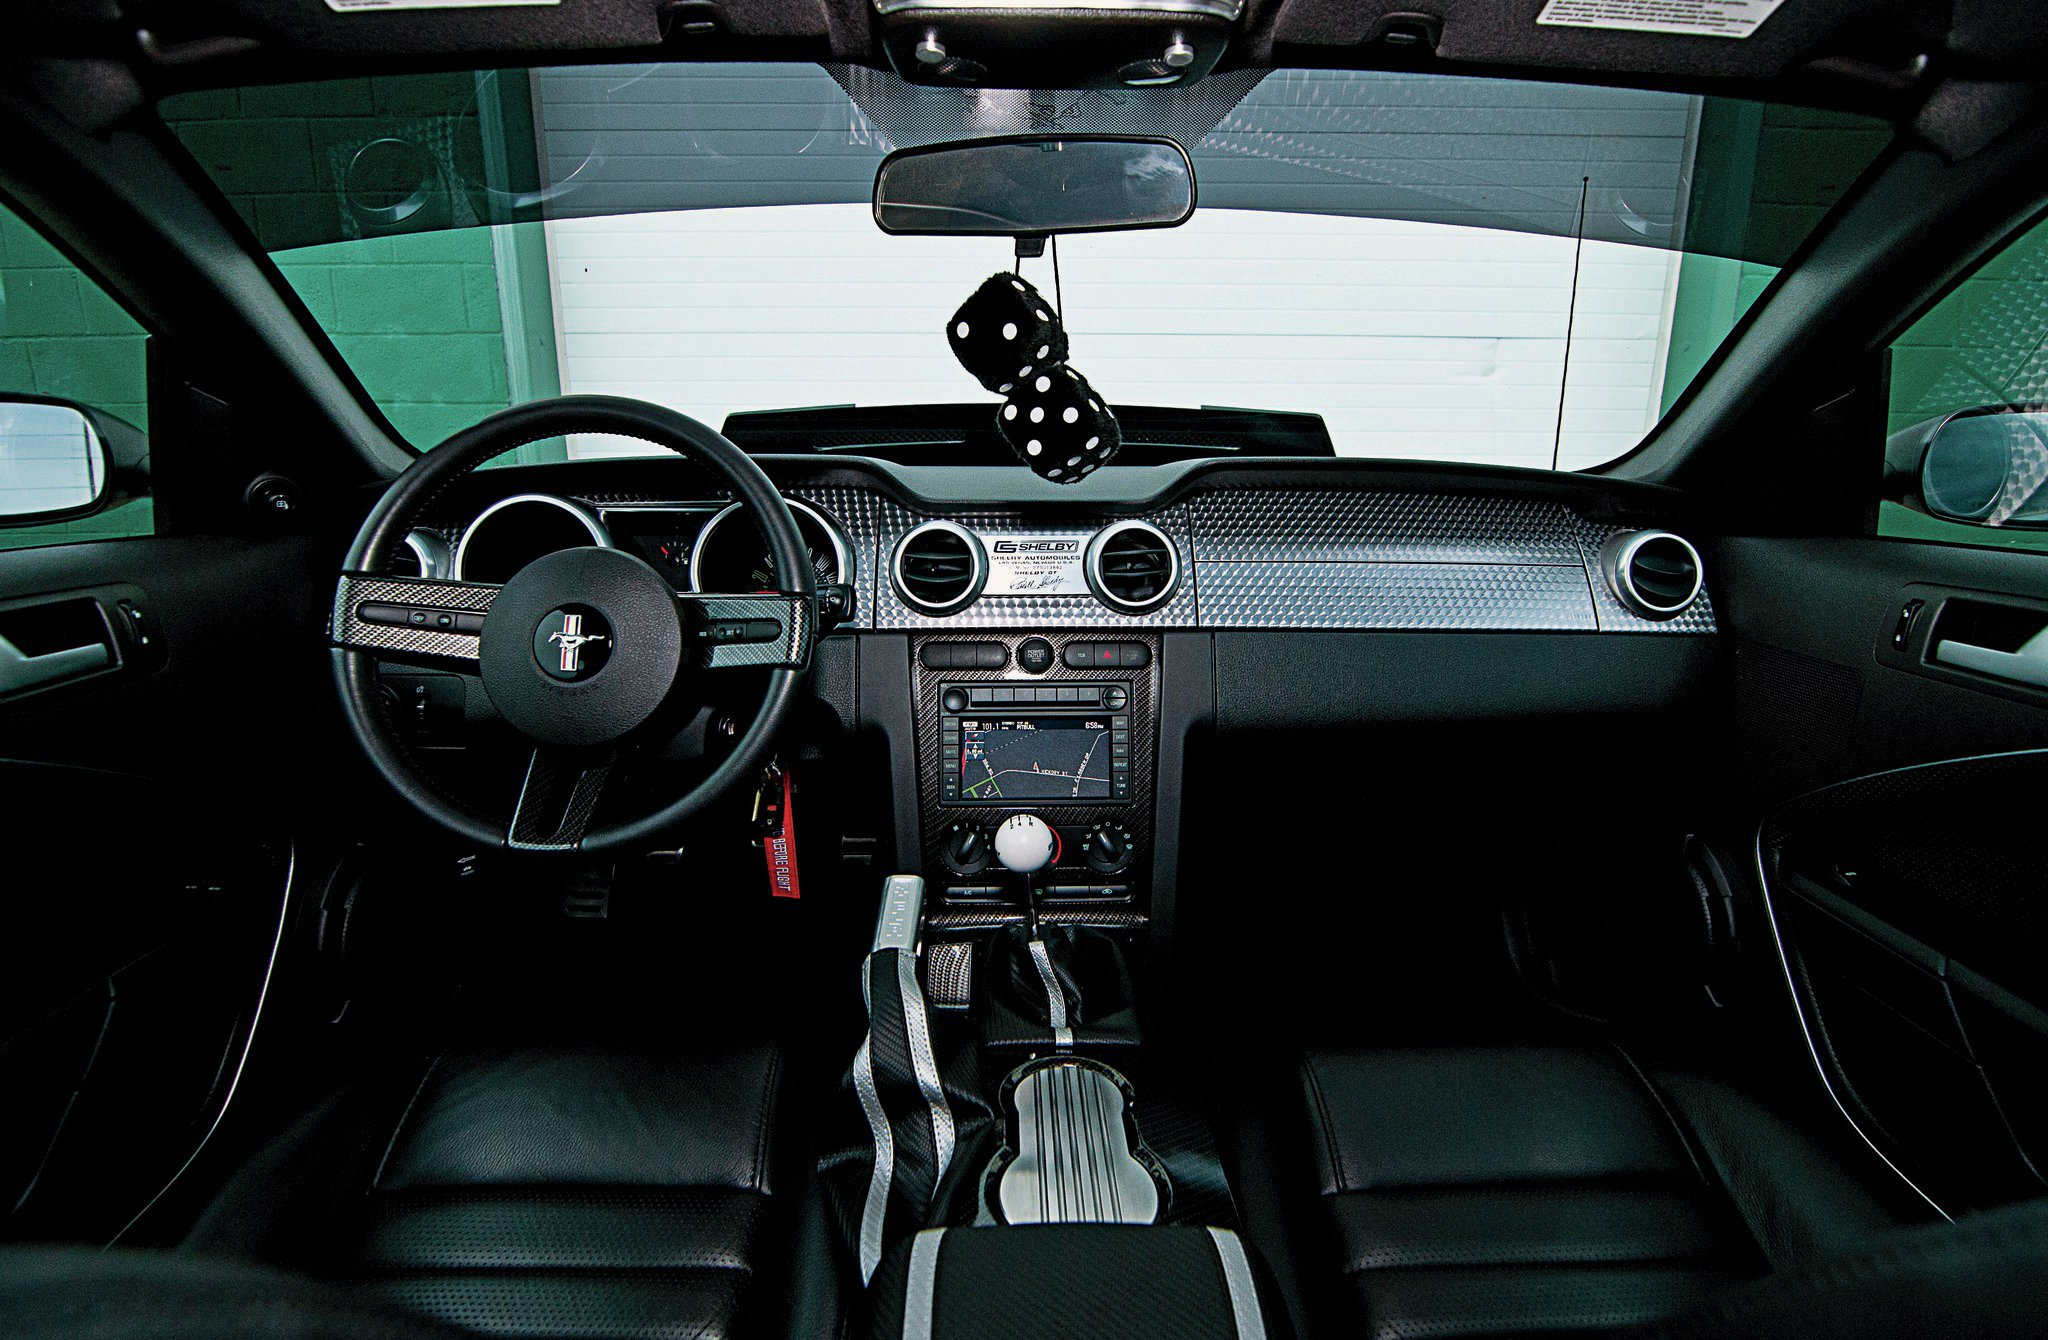 hight resolution of 2007 ford mustang shelby gt interior dash